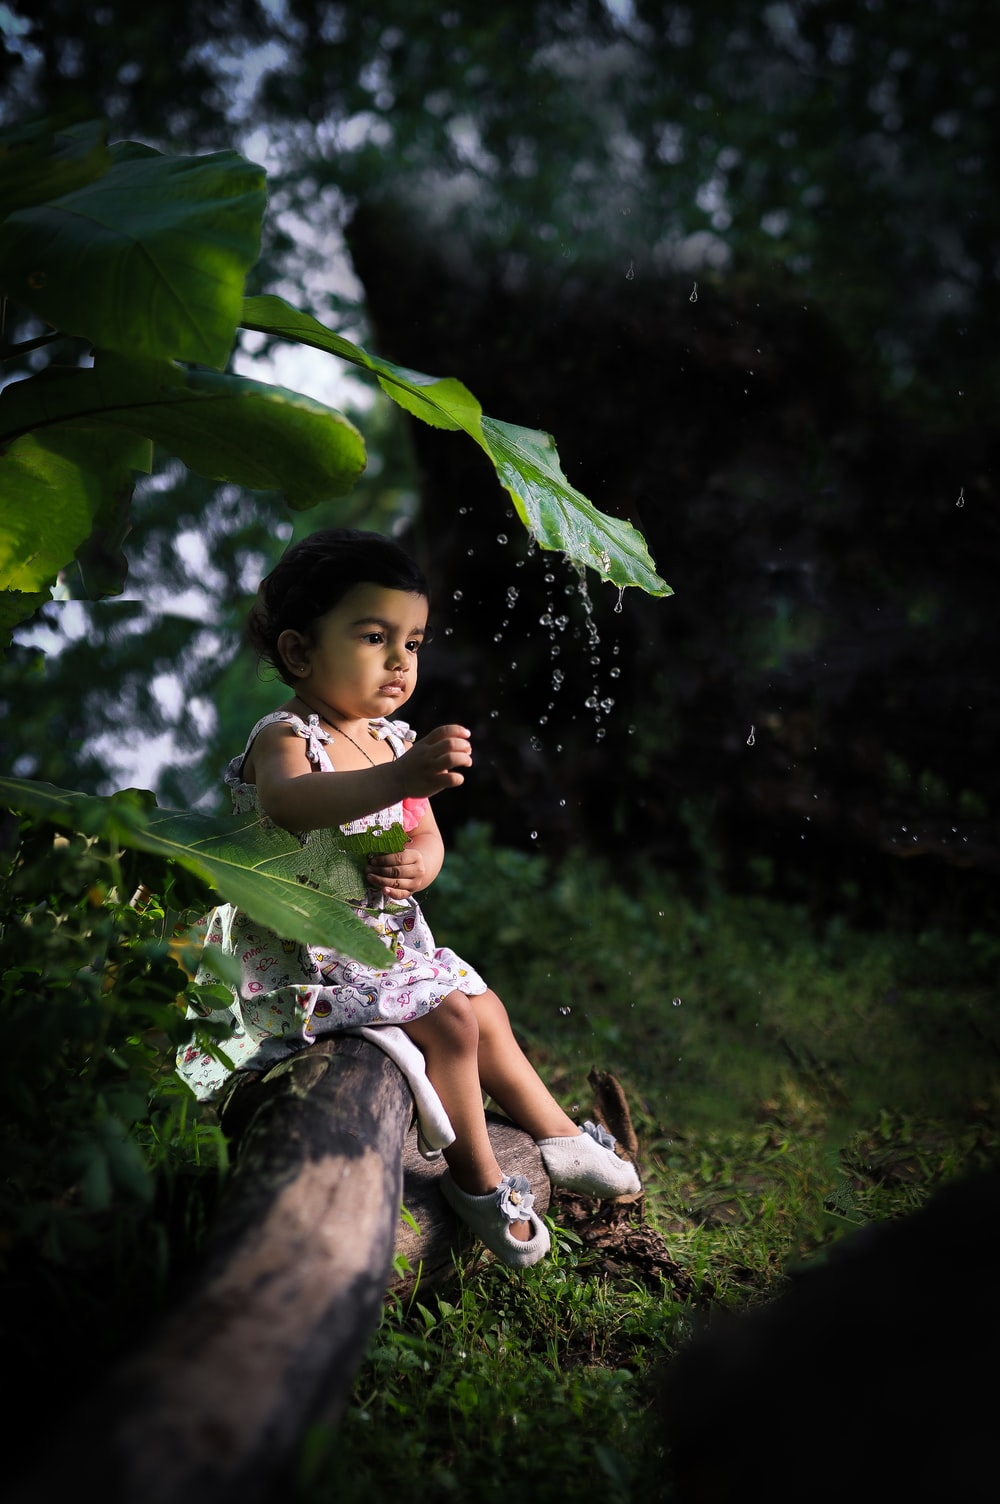 girl in white and green dress sitting on tree branch during daytime